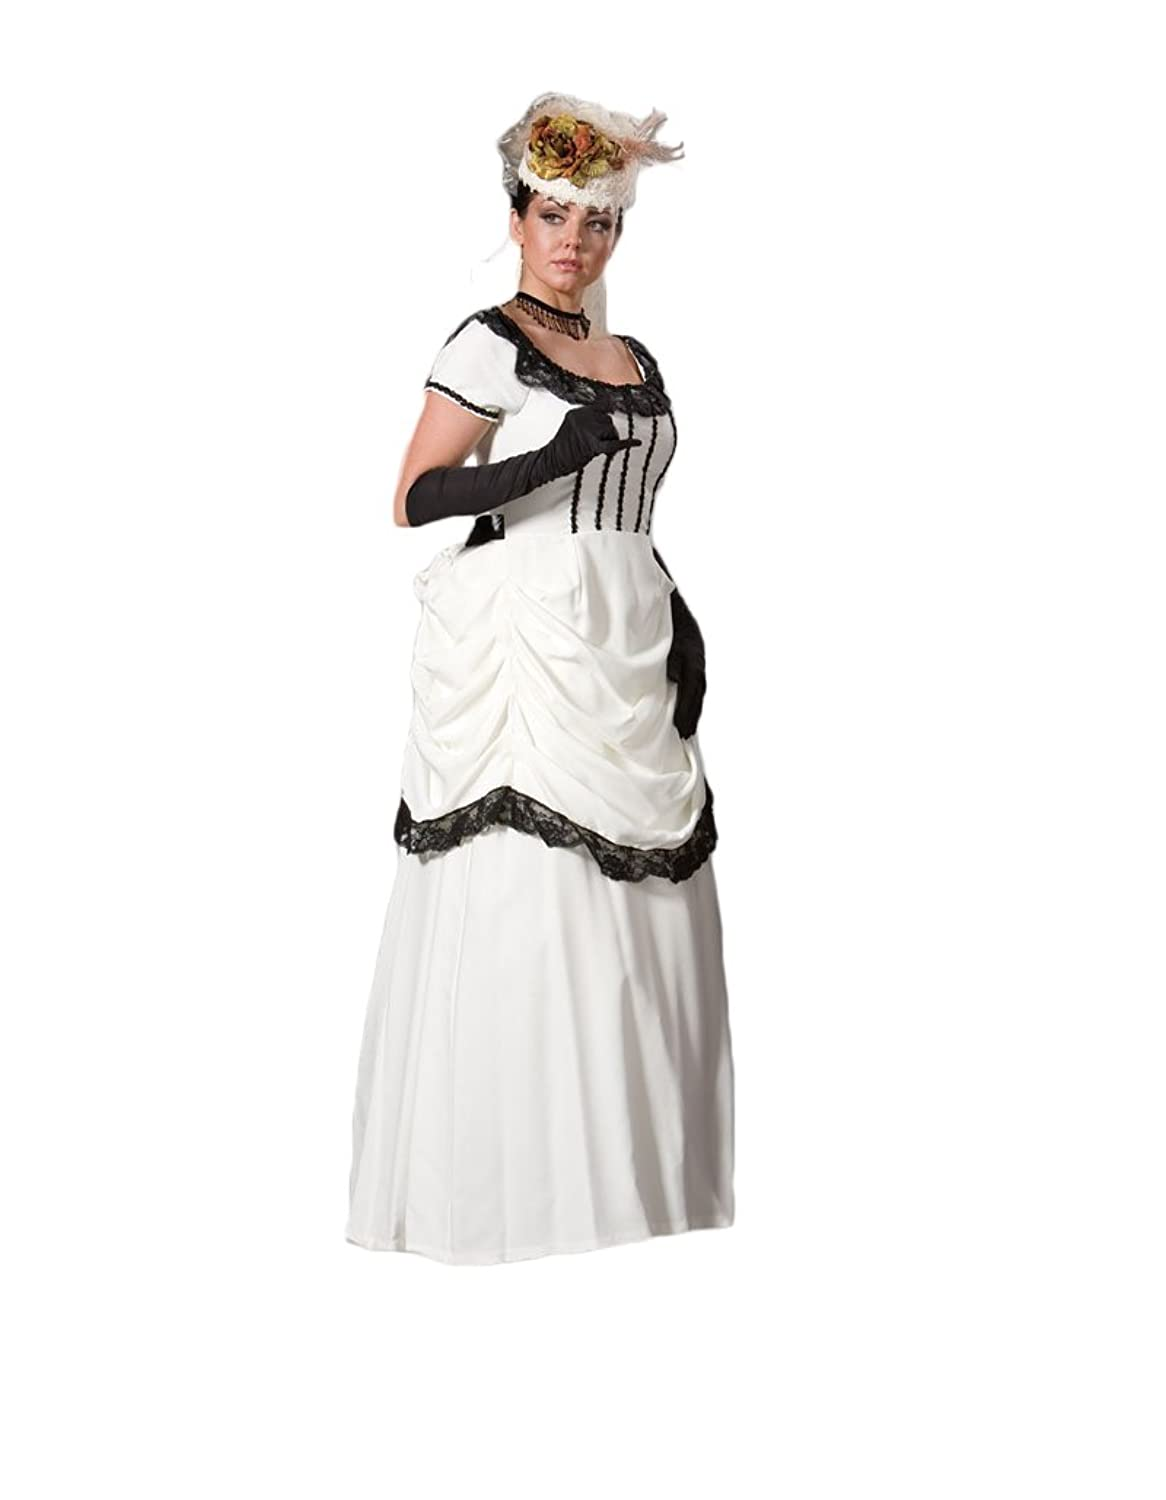 Victorian Dresses, Clothing: Patterns, Costumes, Custom Dresses Womens White Victorian Emma Dress Theater Costume $239.99 AT vintagedancer.com